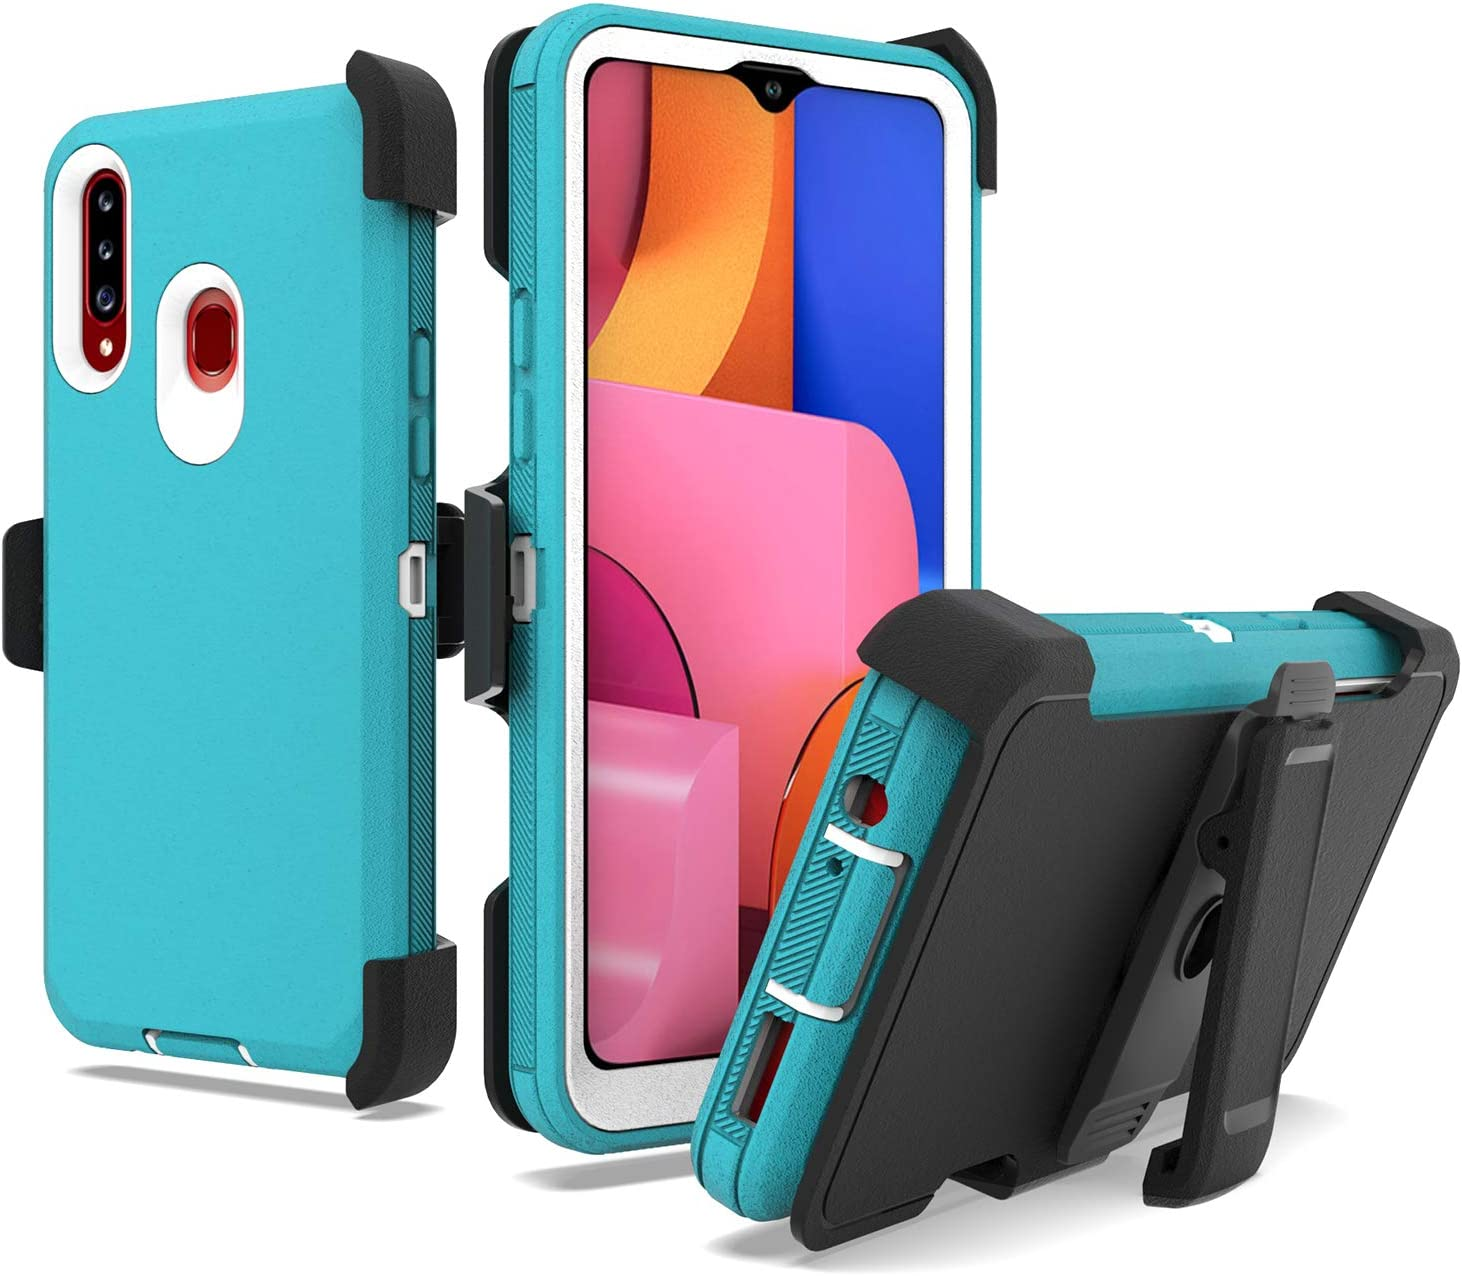 UNC Pro 3 in 1 Belt Clip Holster Cell Phone Case for Samsung Galaxy A20S (NOT for A20), Heavy Duty Hybrid Shockproof Bumper Case with Kickstand, Turquoise/White